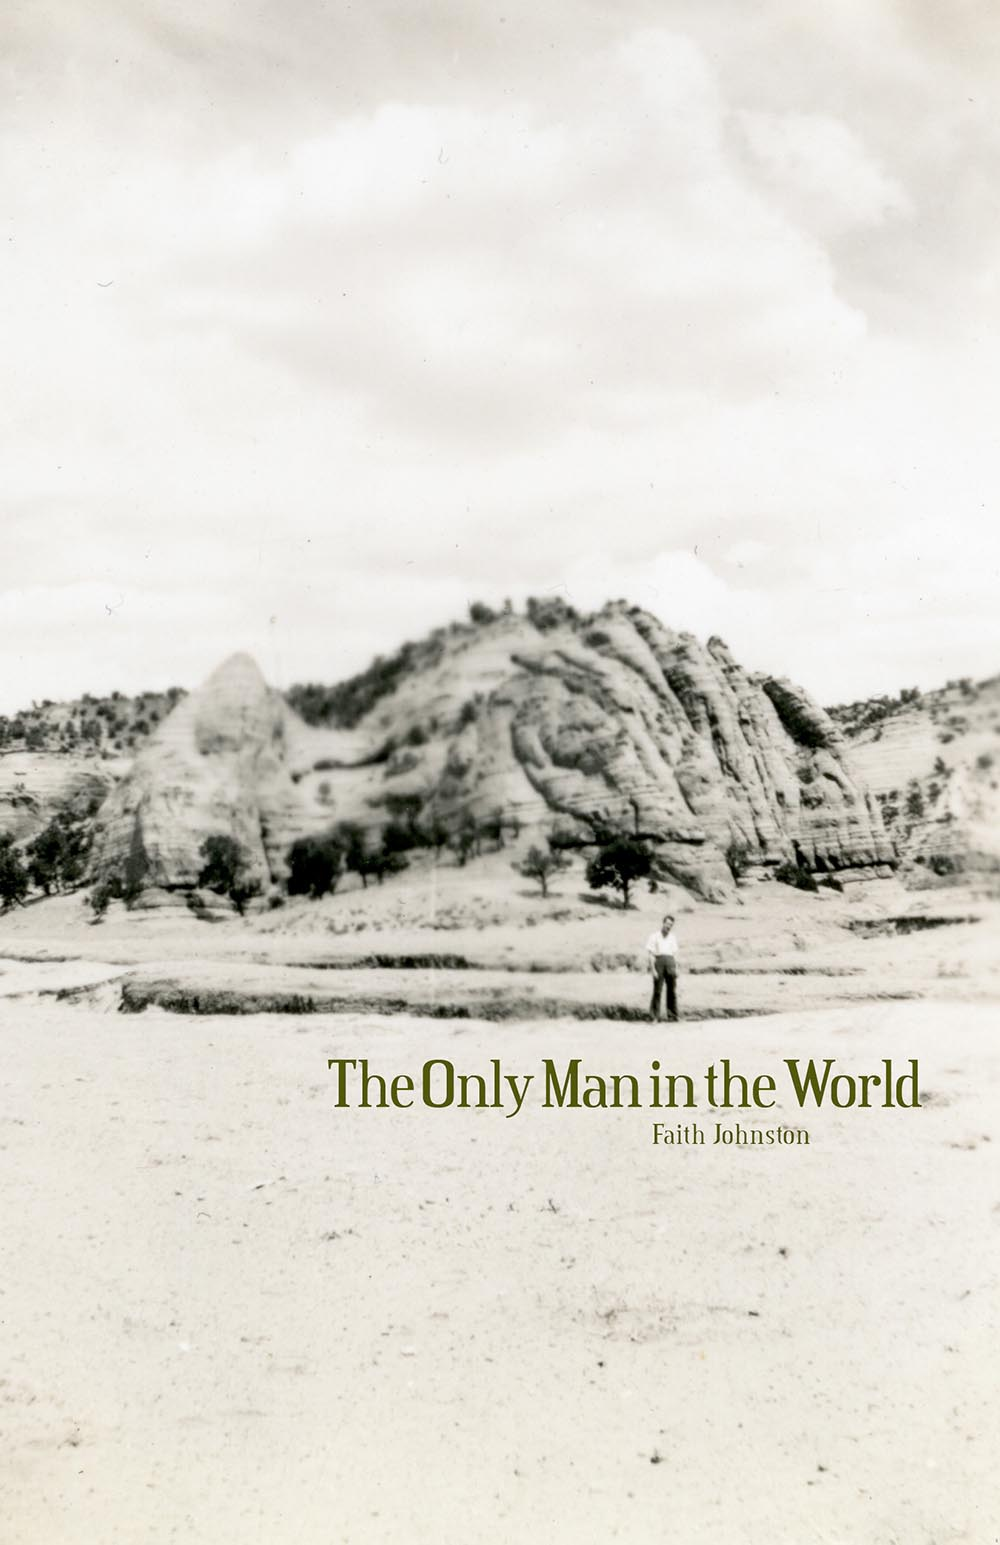 The Only Man in the World by Faith Johnston